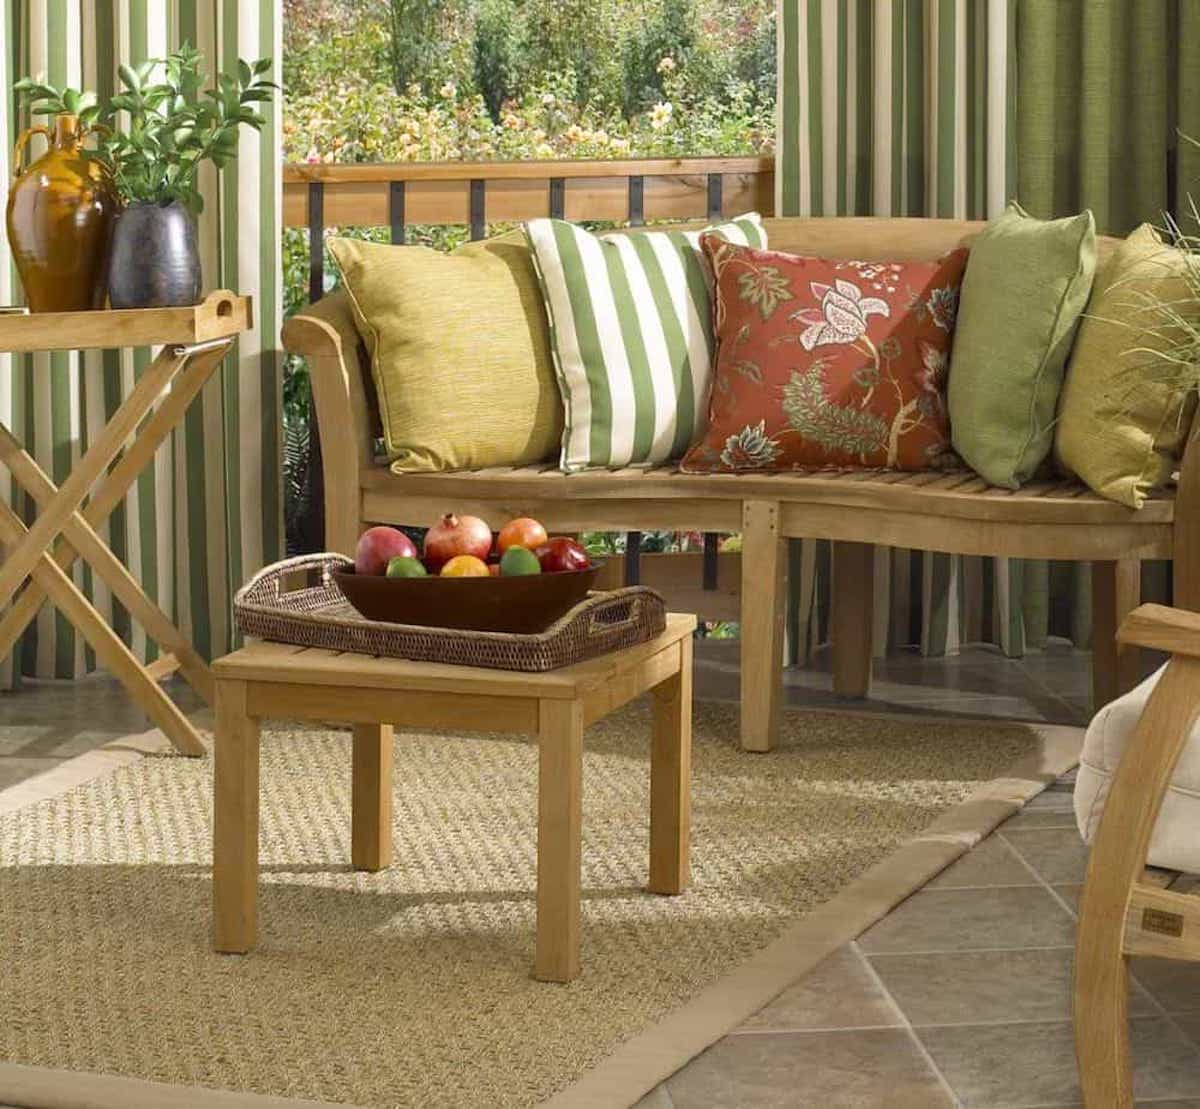 Custom Sisal Rug Details For Outdoor Living Room (View 8 of 15)